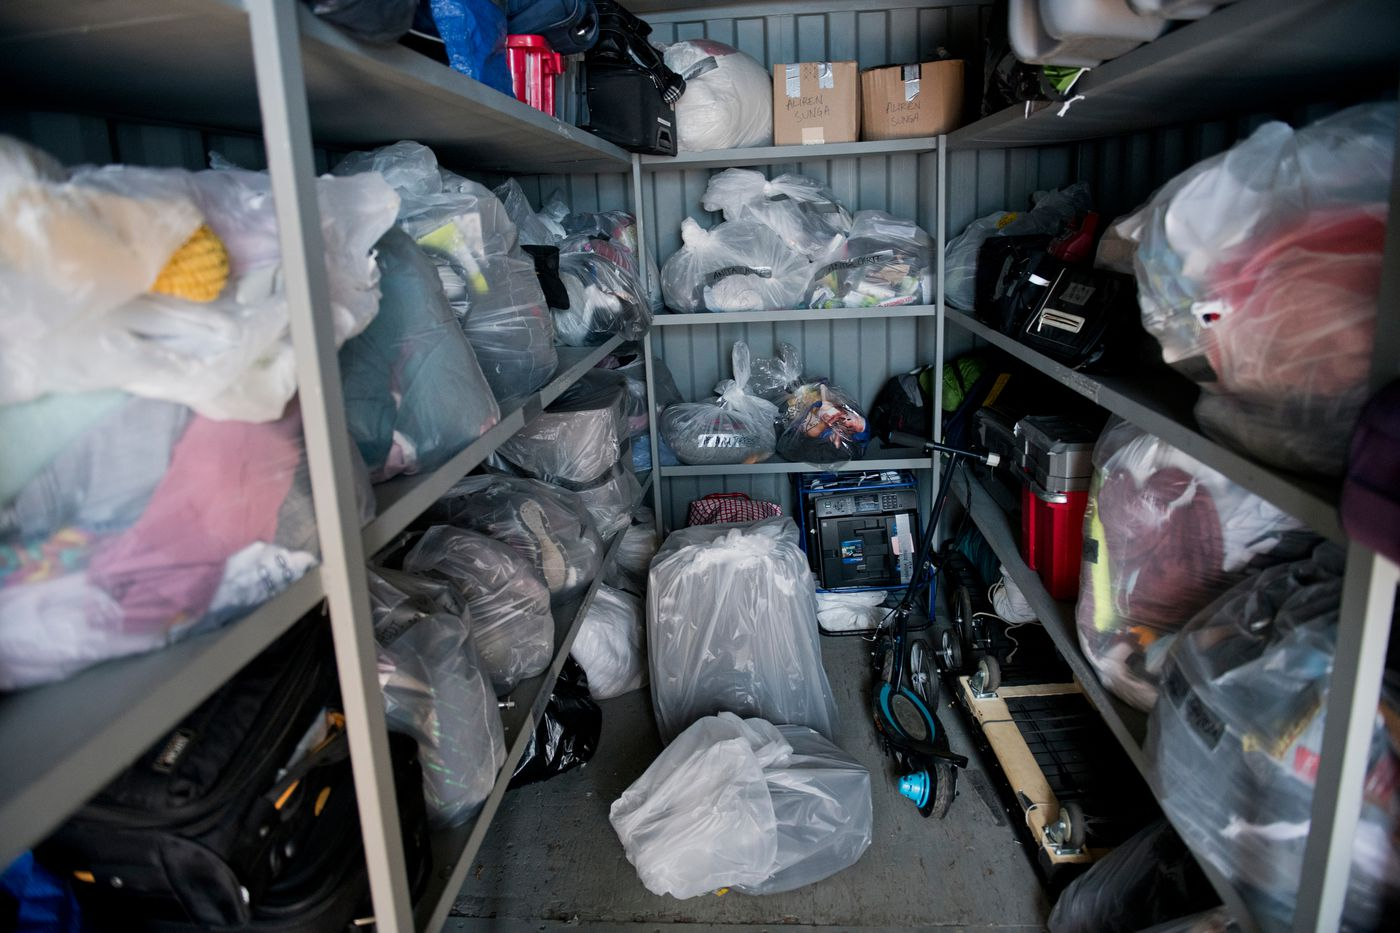 Locked trailers at the Embarcadero SAFE Navigation Center allow for guests to store their belongings. Guests can also store items beneath their beds and in lockers. (Marc Lester / ADN)